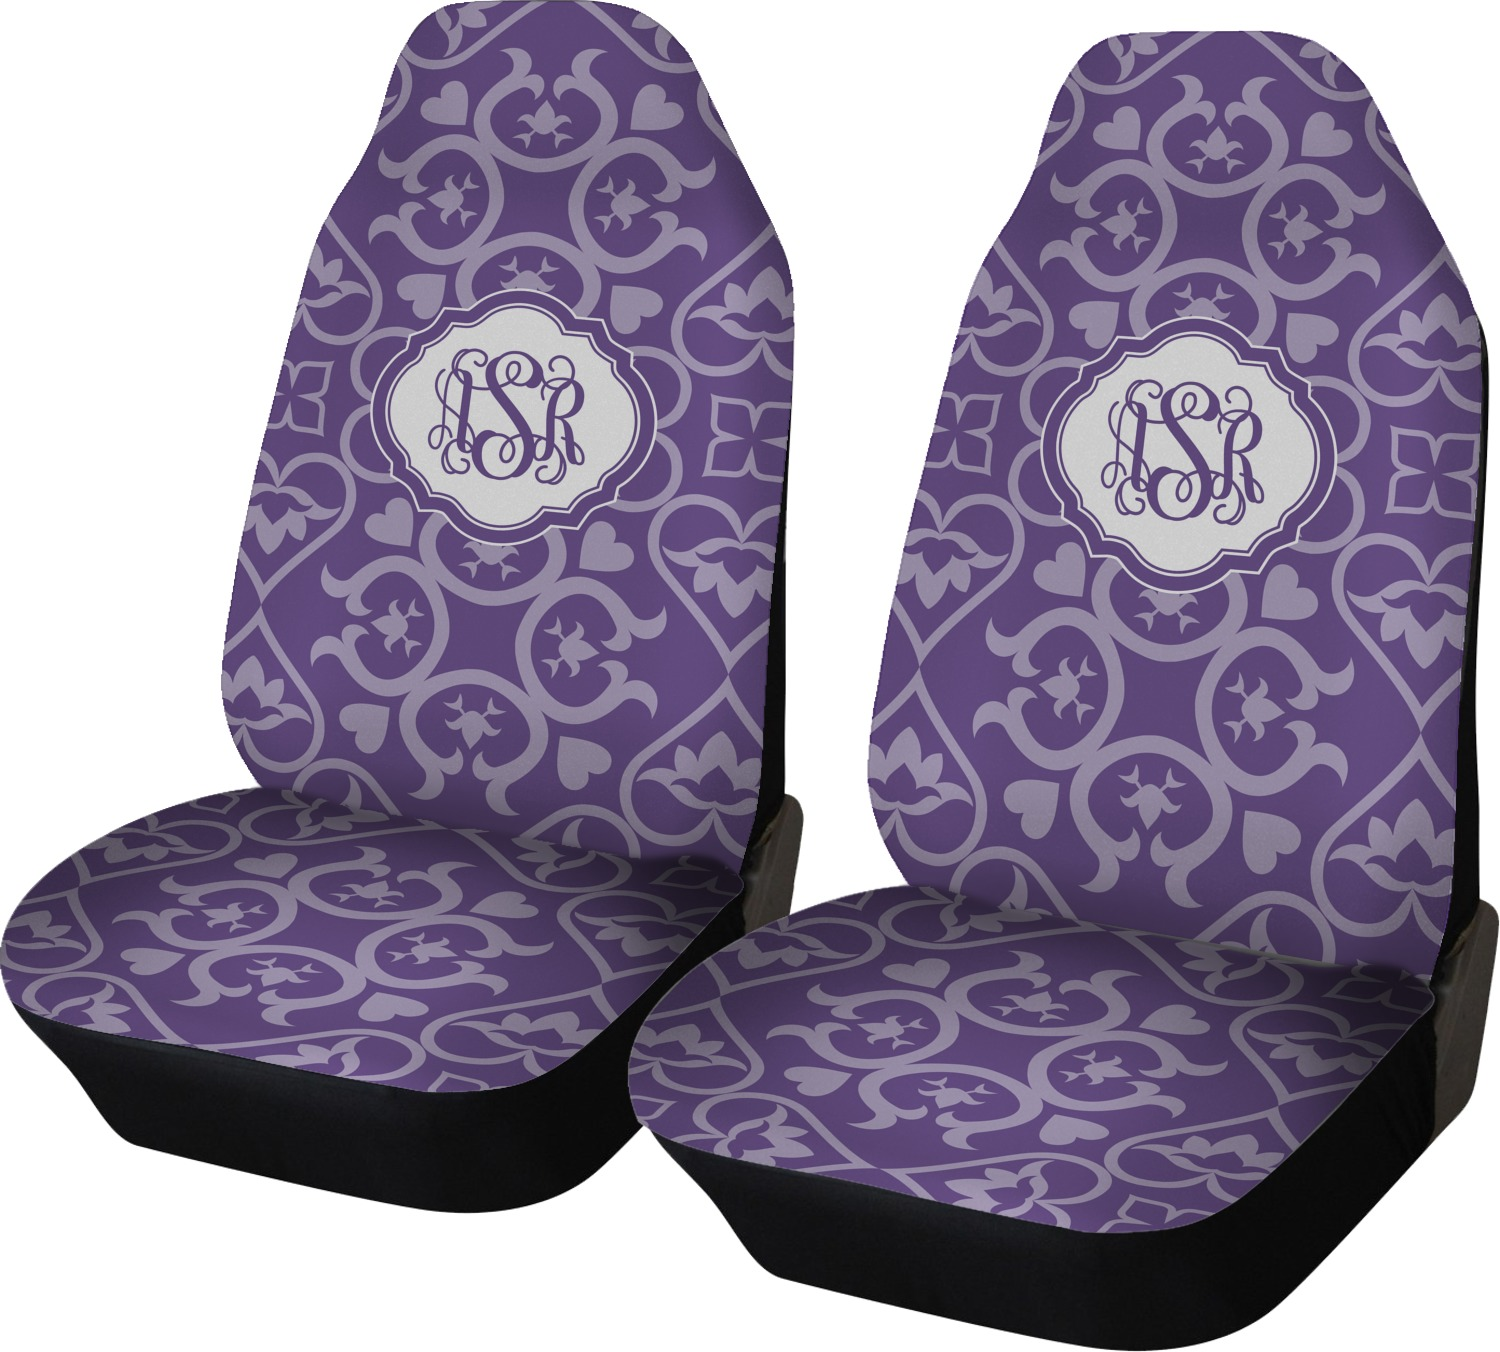 Lotus Flower Car Seat Covers Set Of Two Personalized